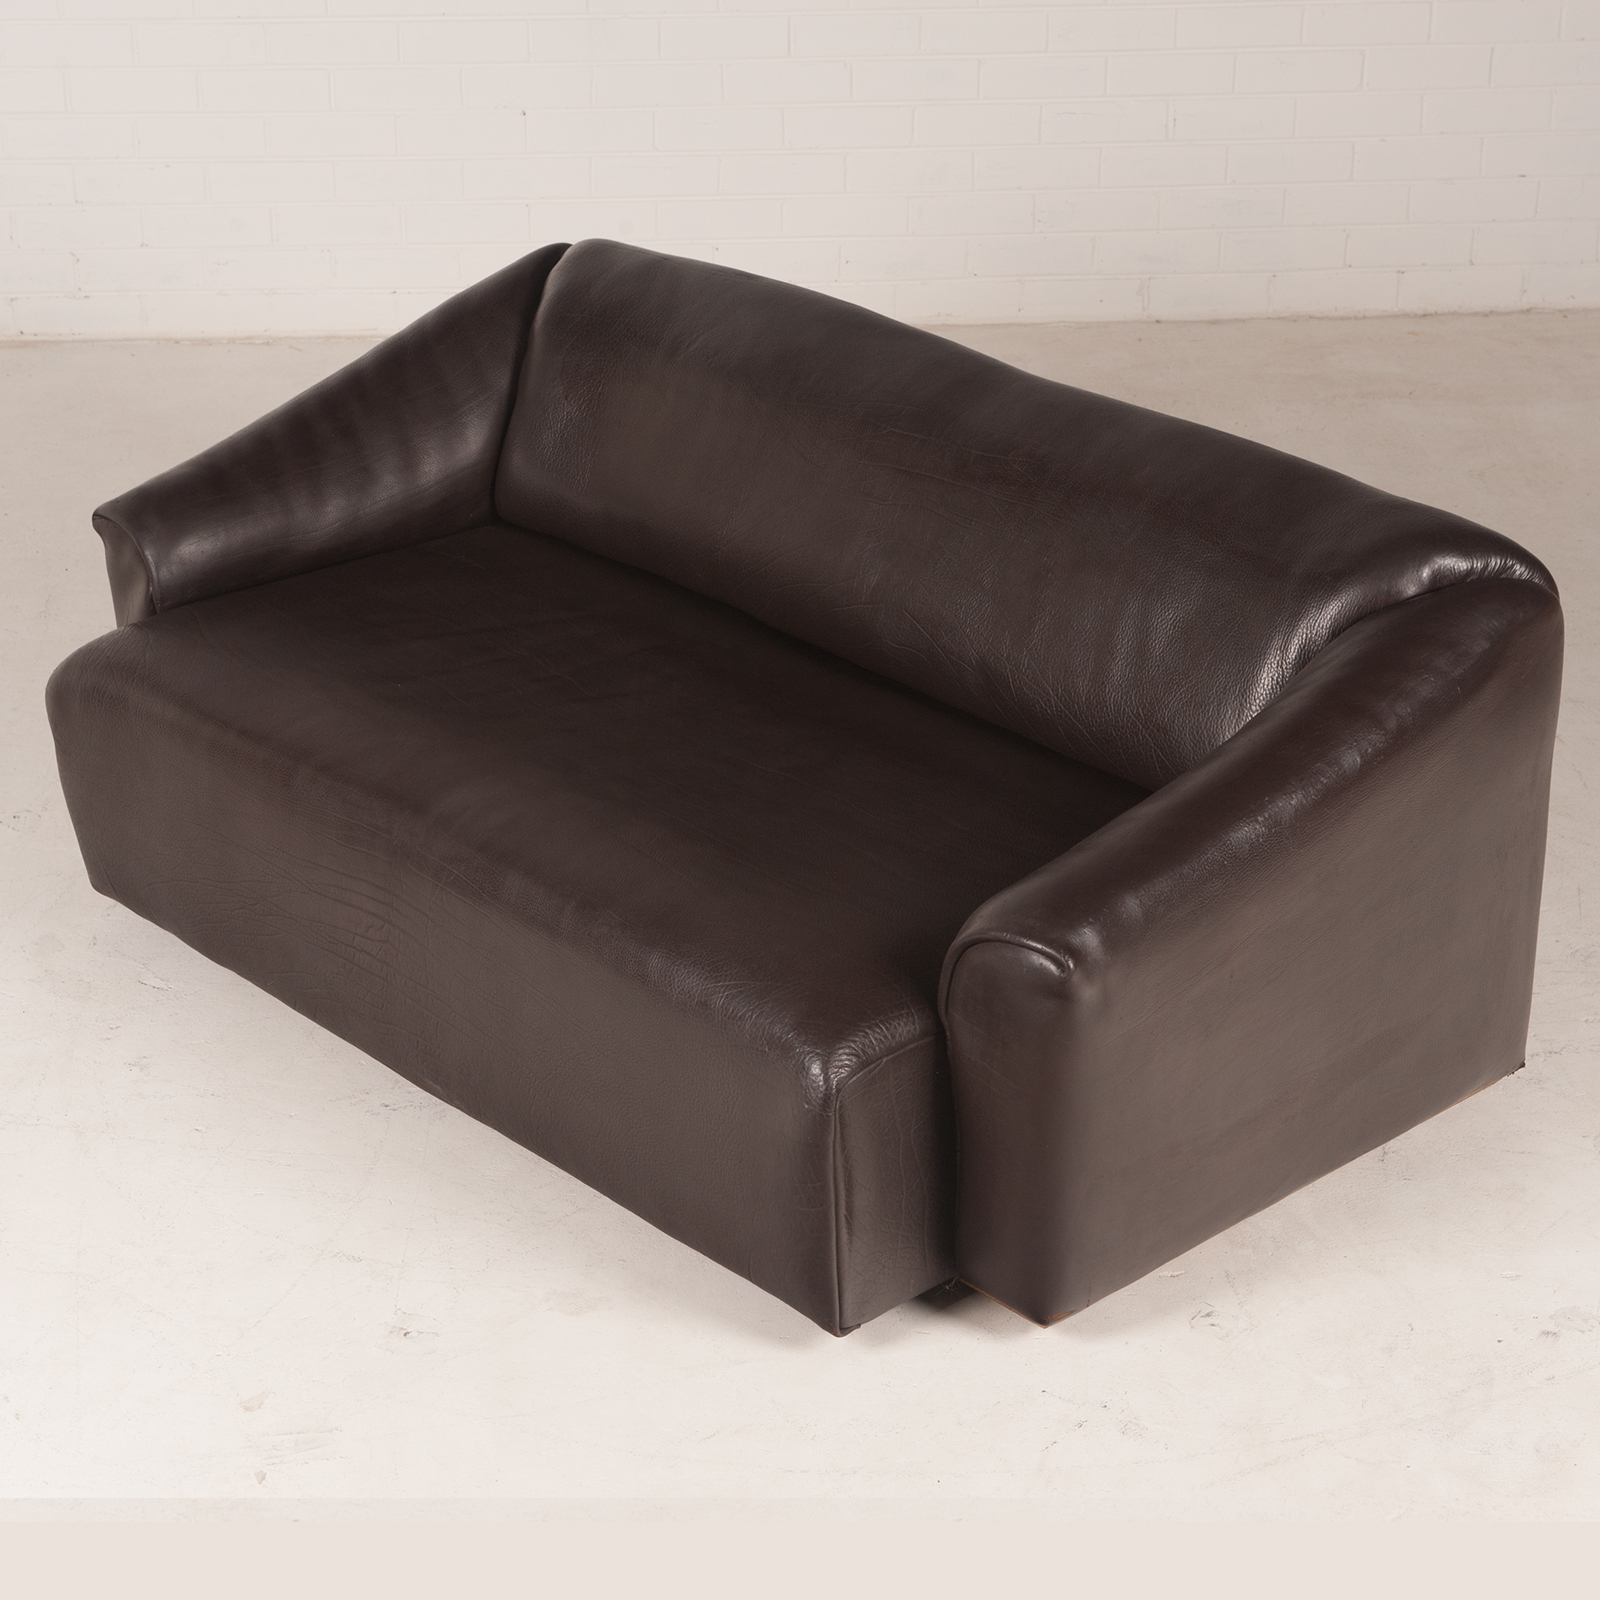 Ds47 3 Seat Sofa By De Sede In Thick Dark Brown Leather 1970s Switzerland 04